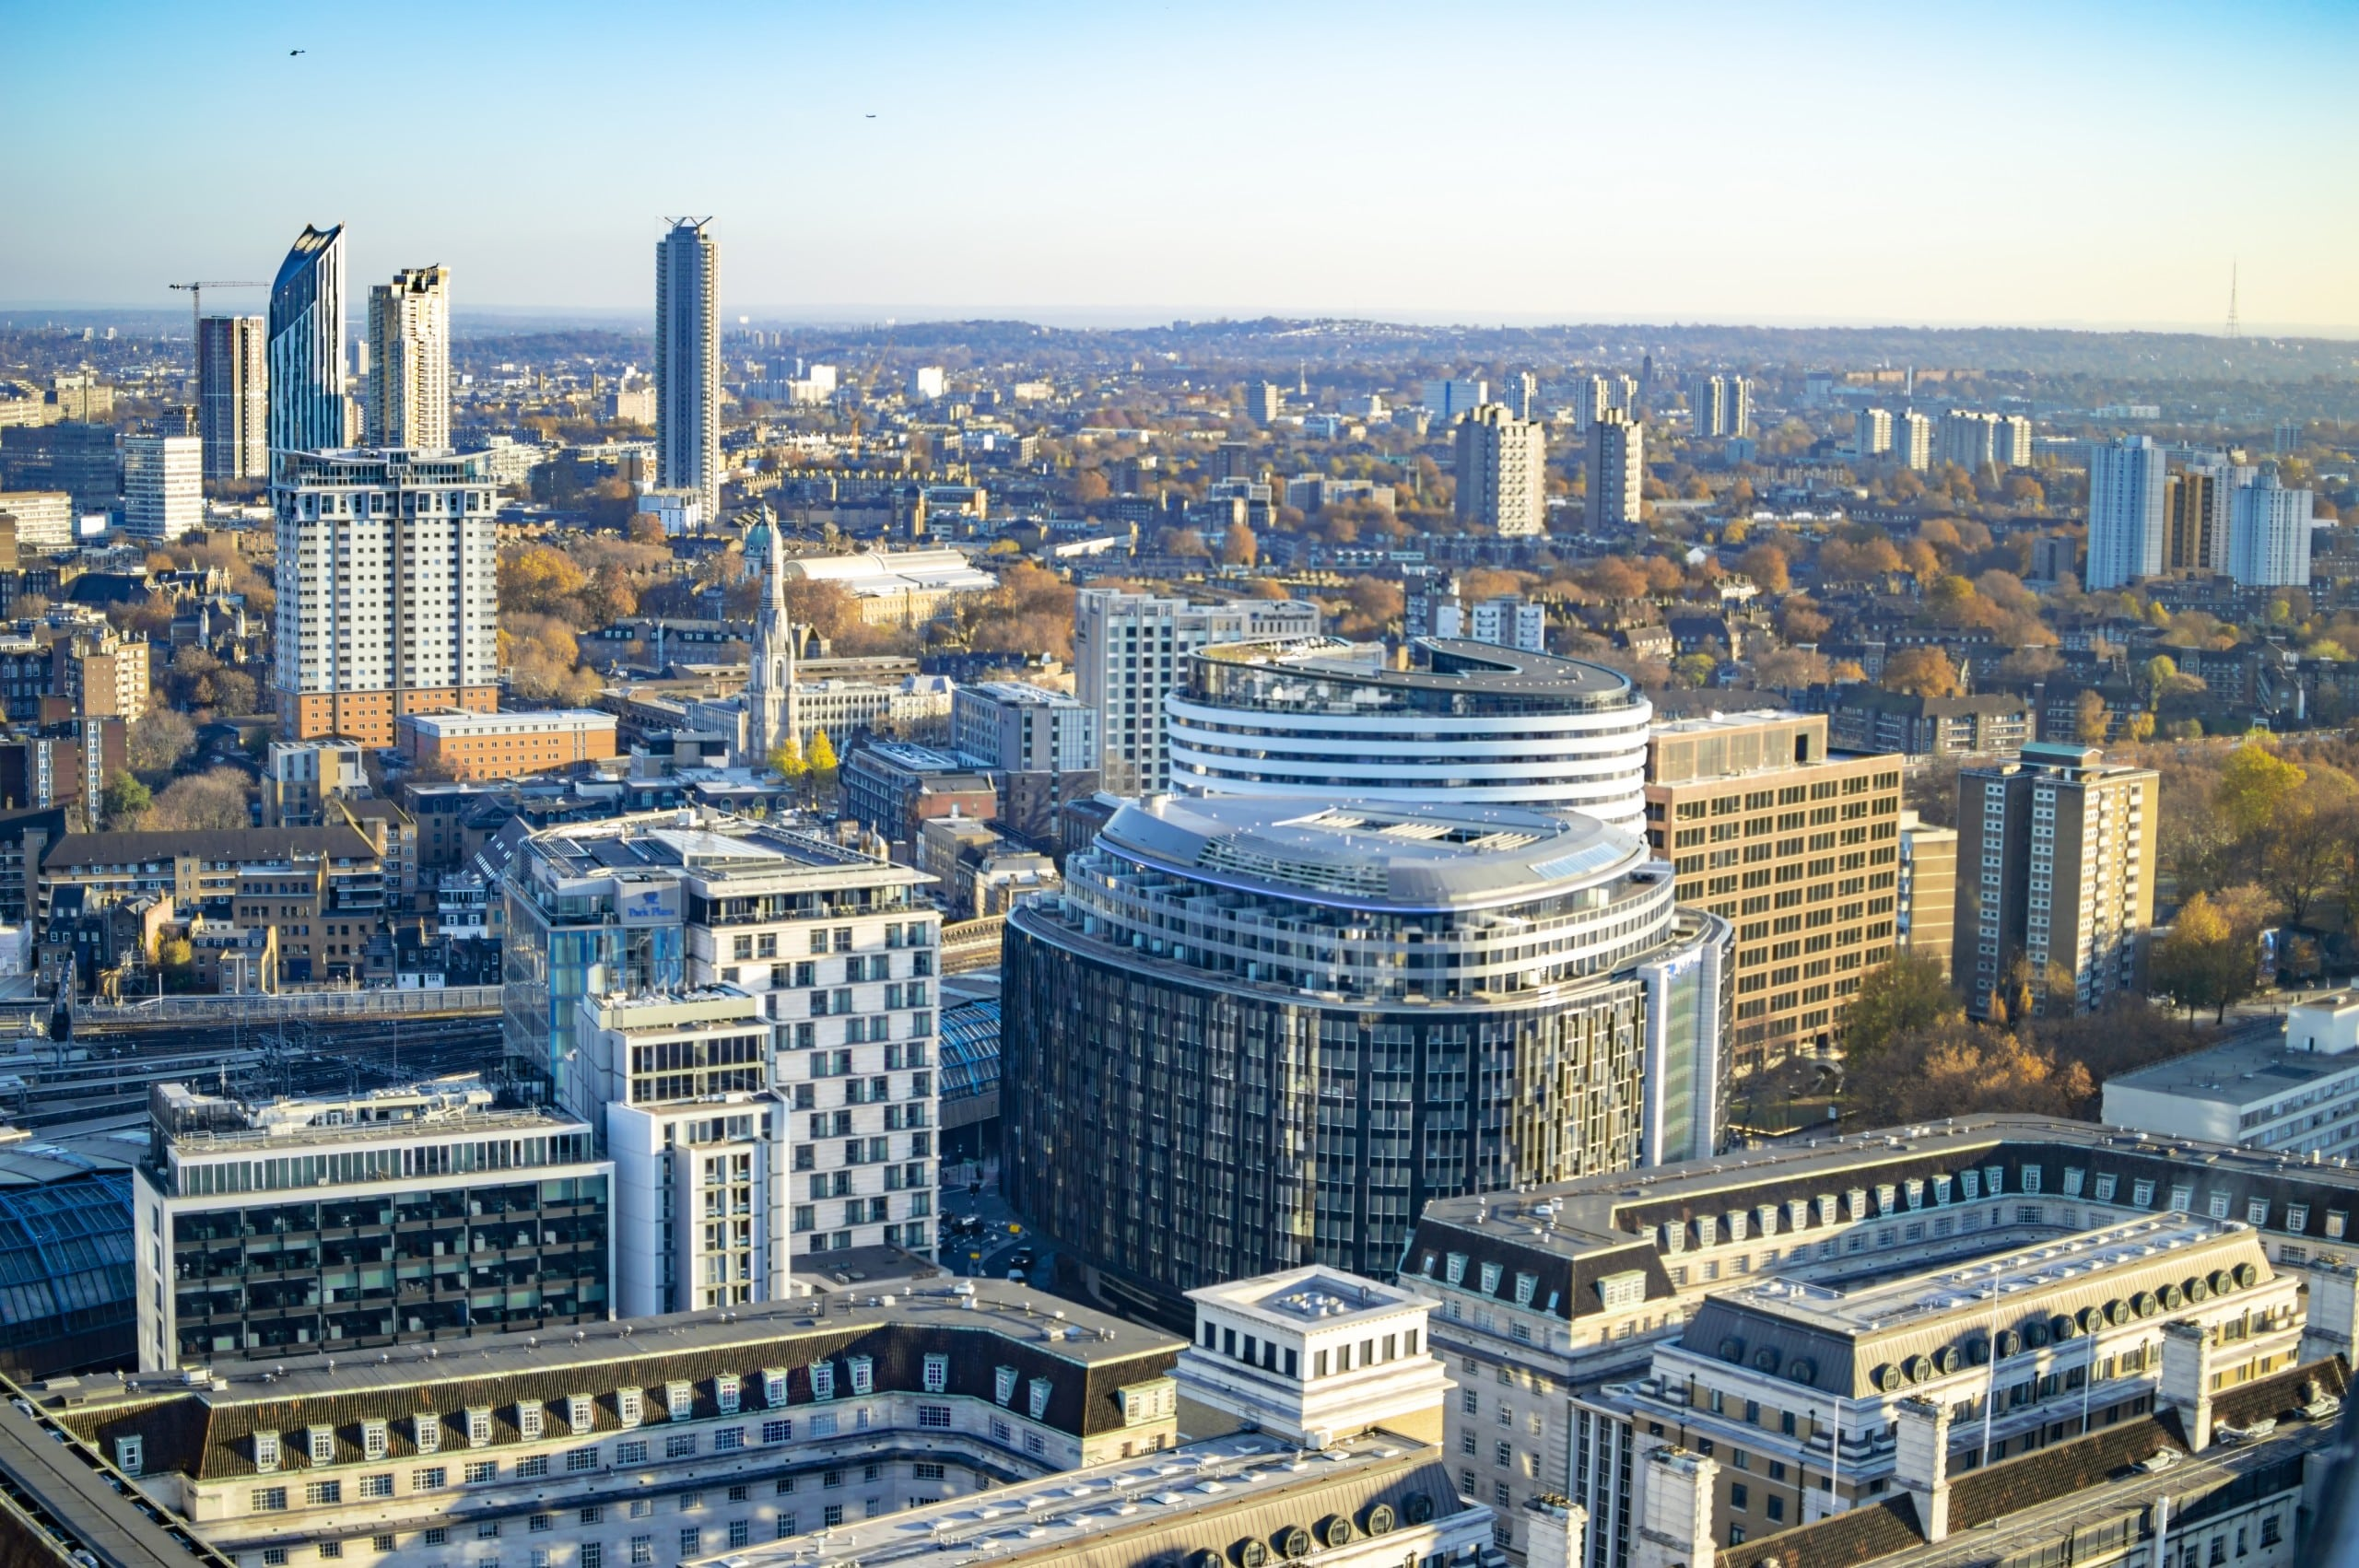 The skyline of south east london and many great buildings